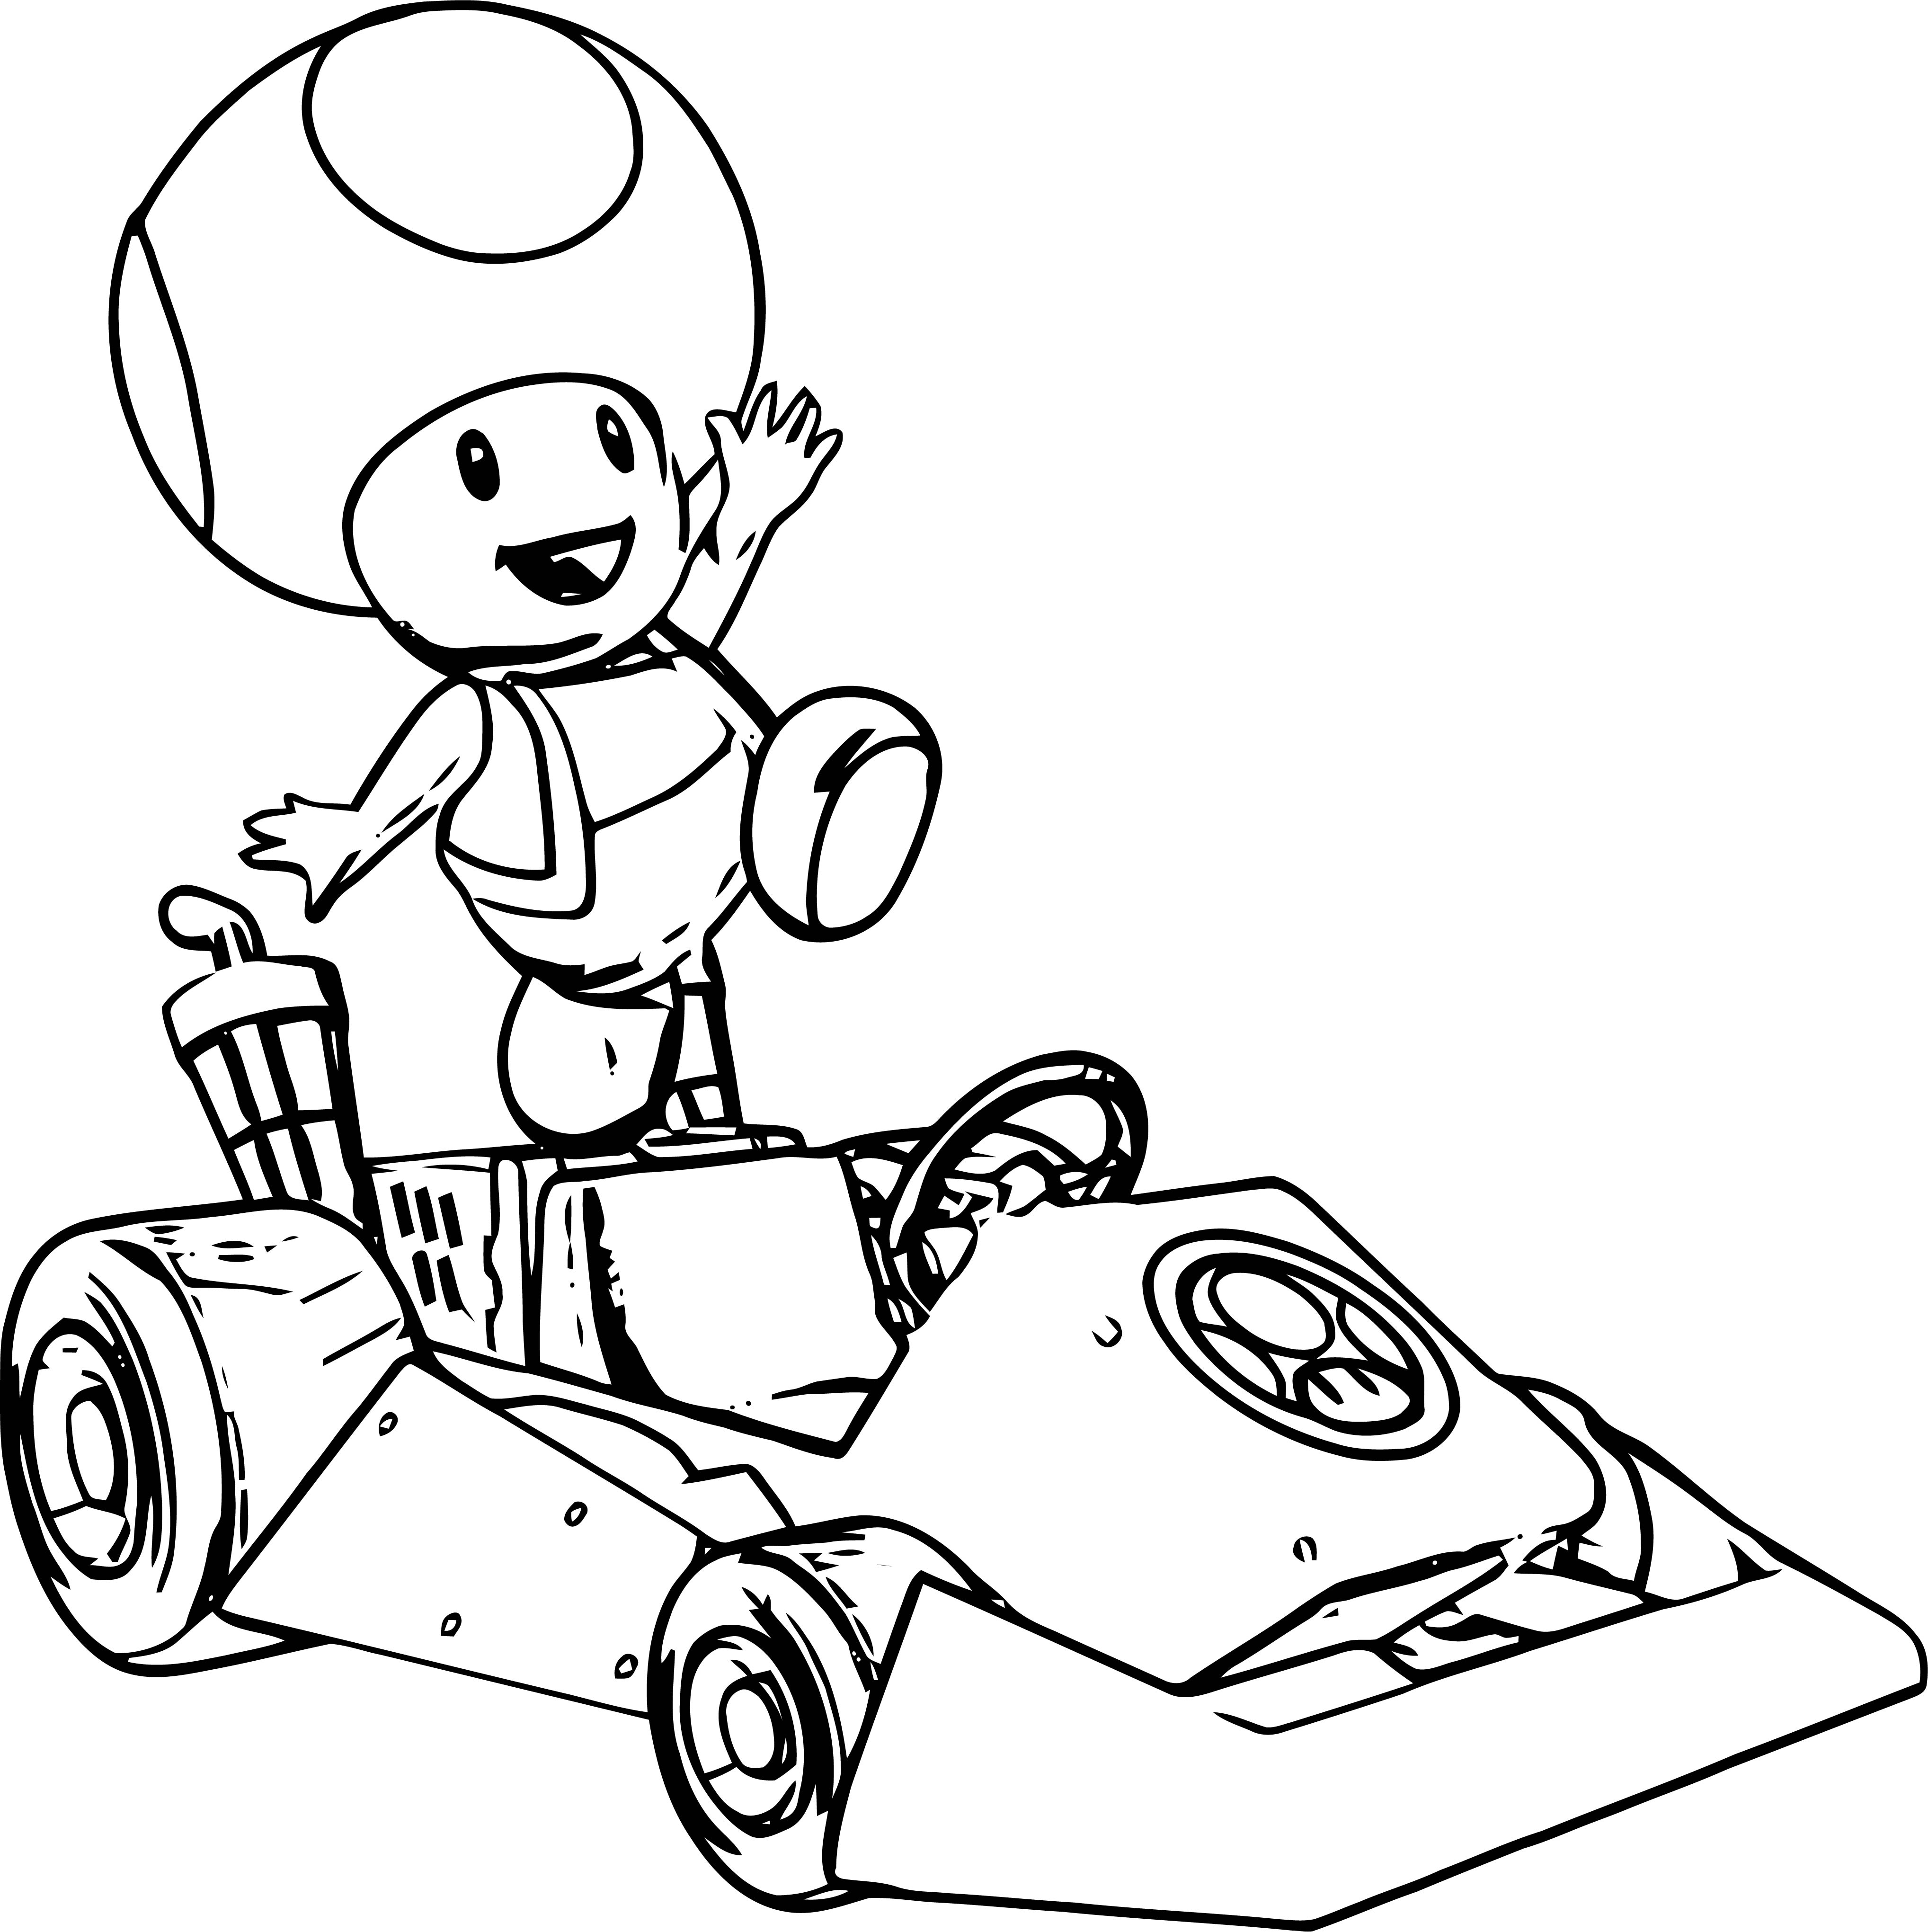 Toad Car Coloring Page